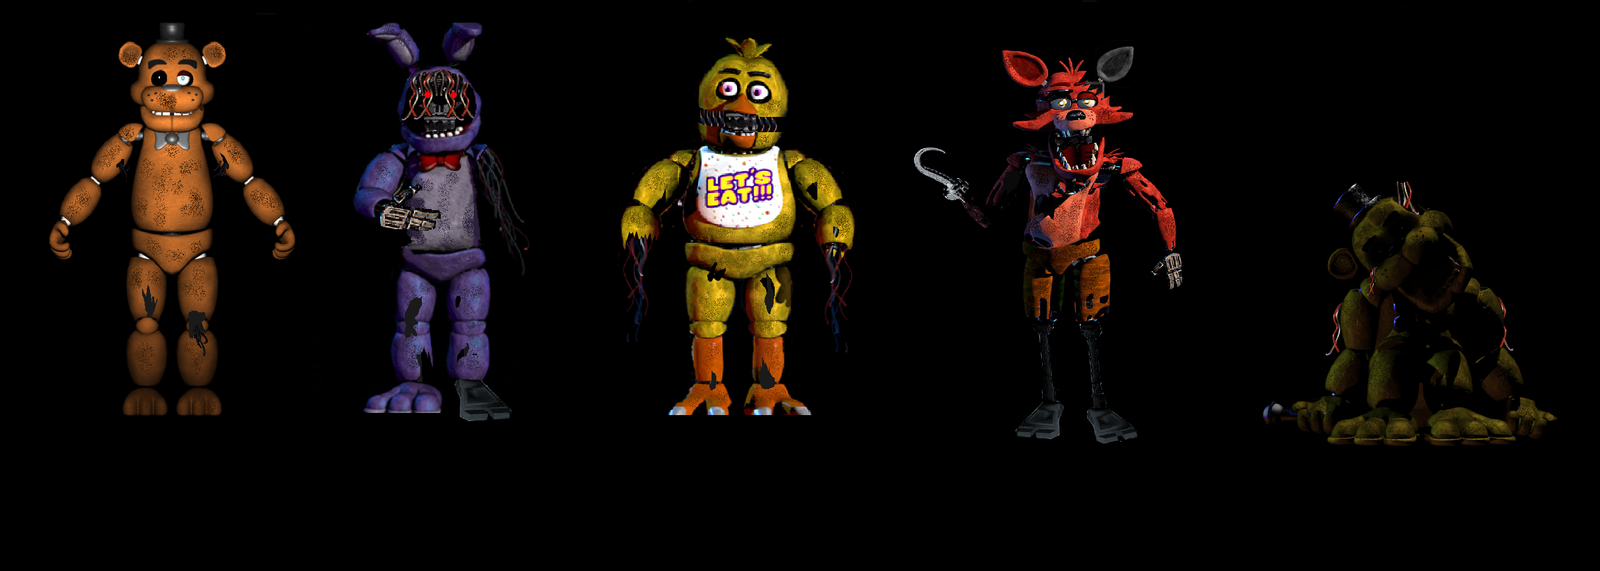 Fan Made Withered Animatronics